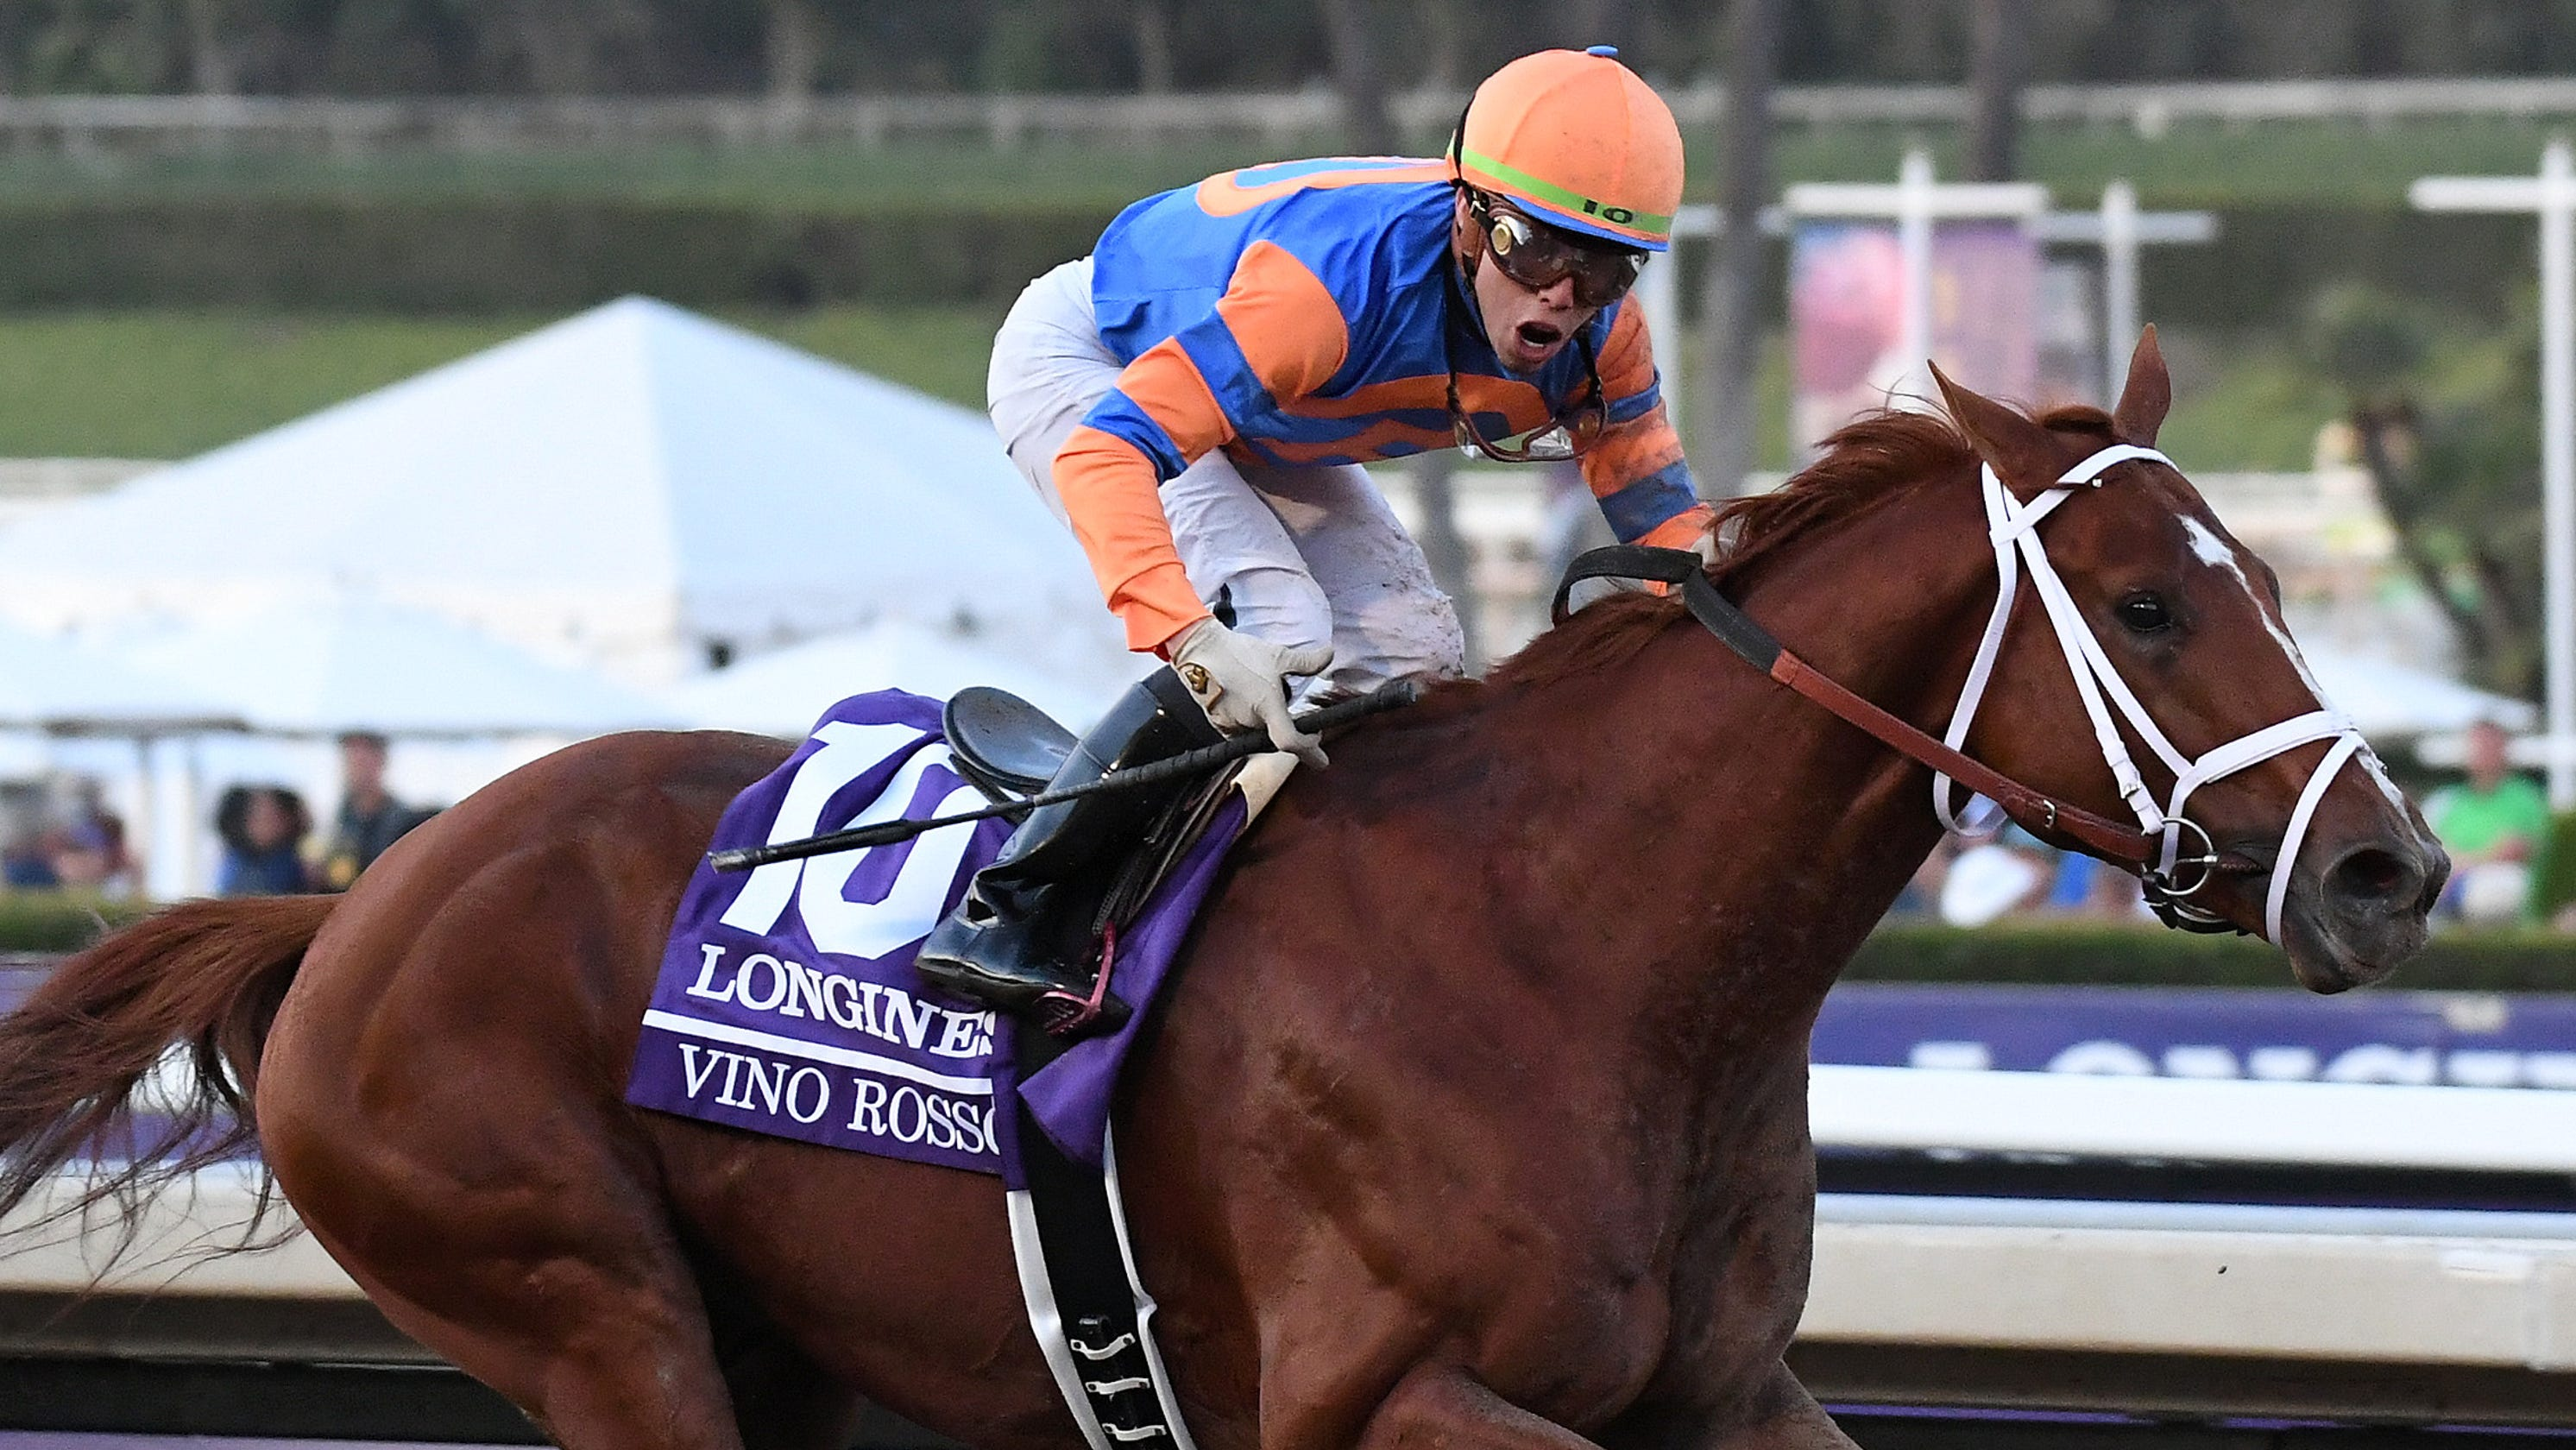 Breeders Cup Vino Rosso Bests Favored Mckinzie In Classic